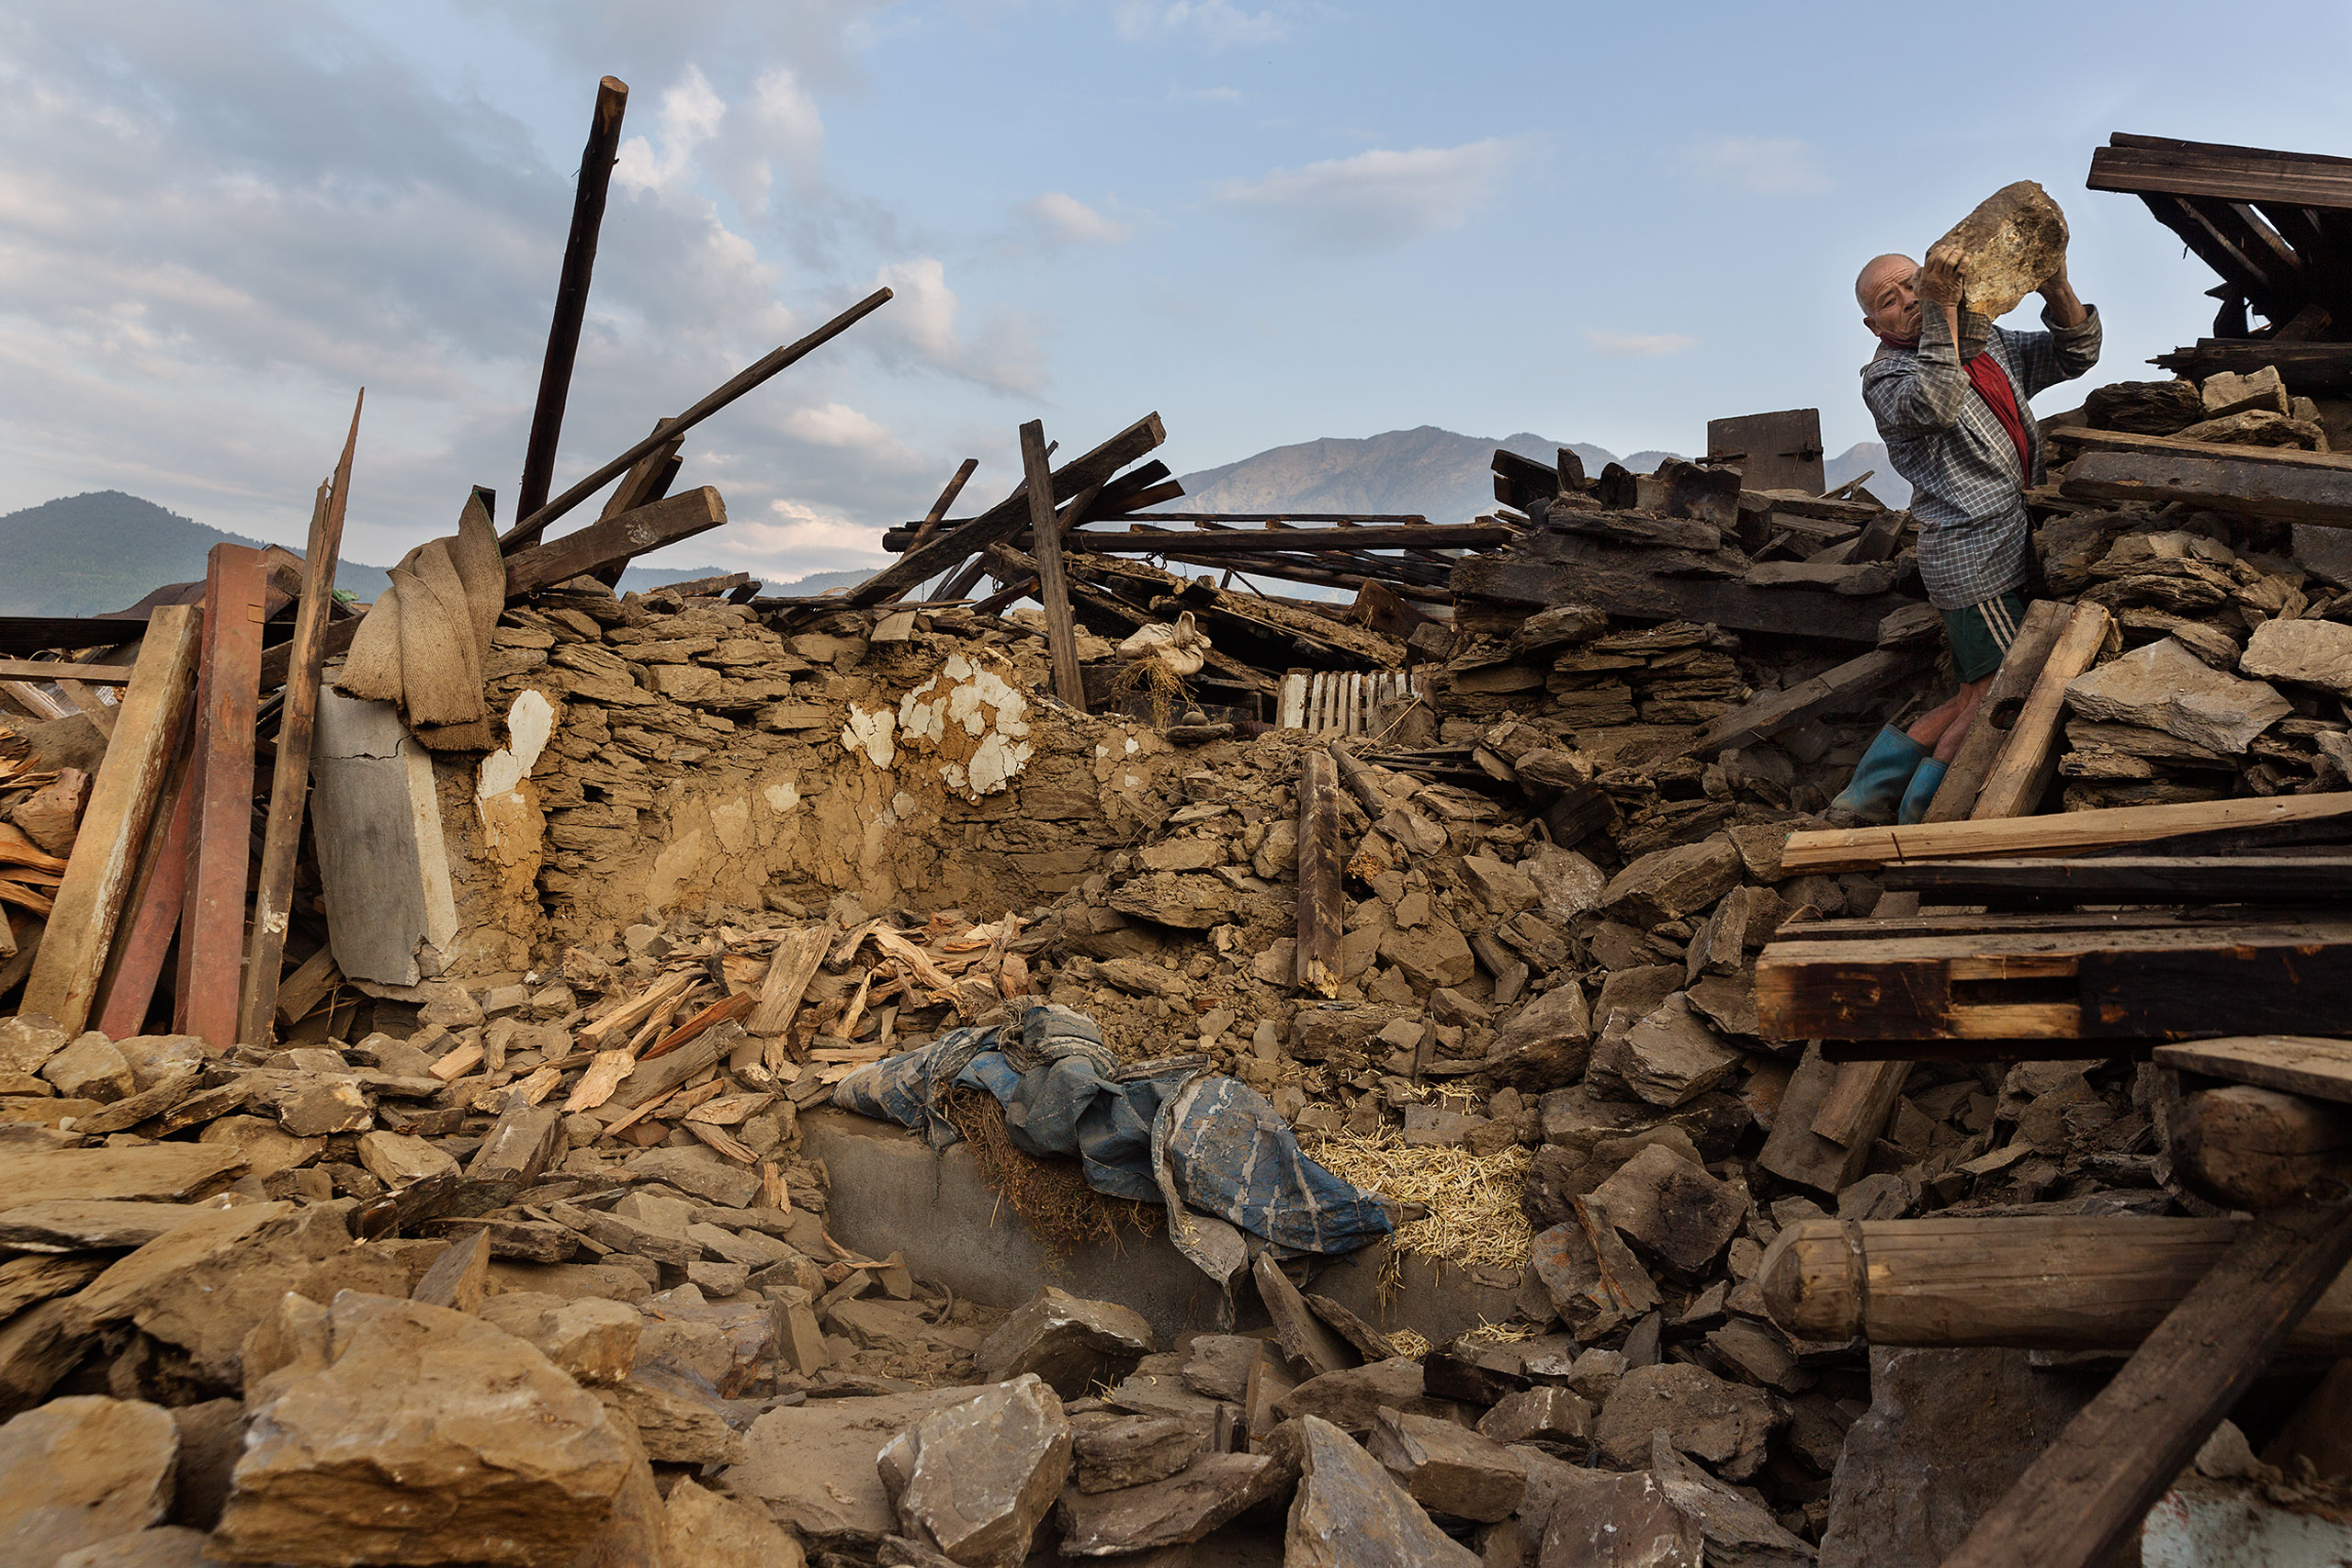 Villagers look through rubble in Barpak, Nepal, May 5, 2015.